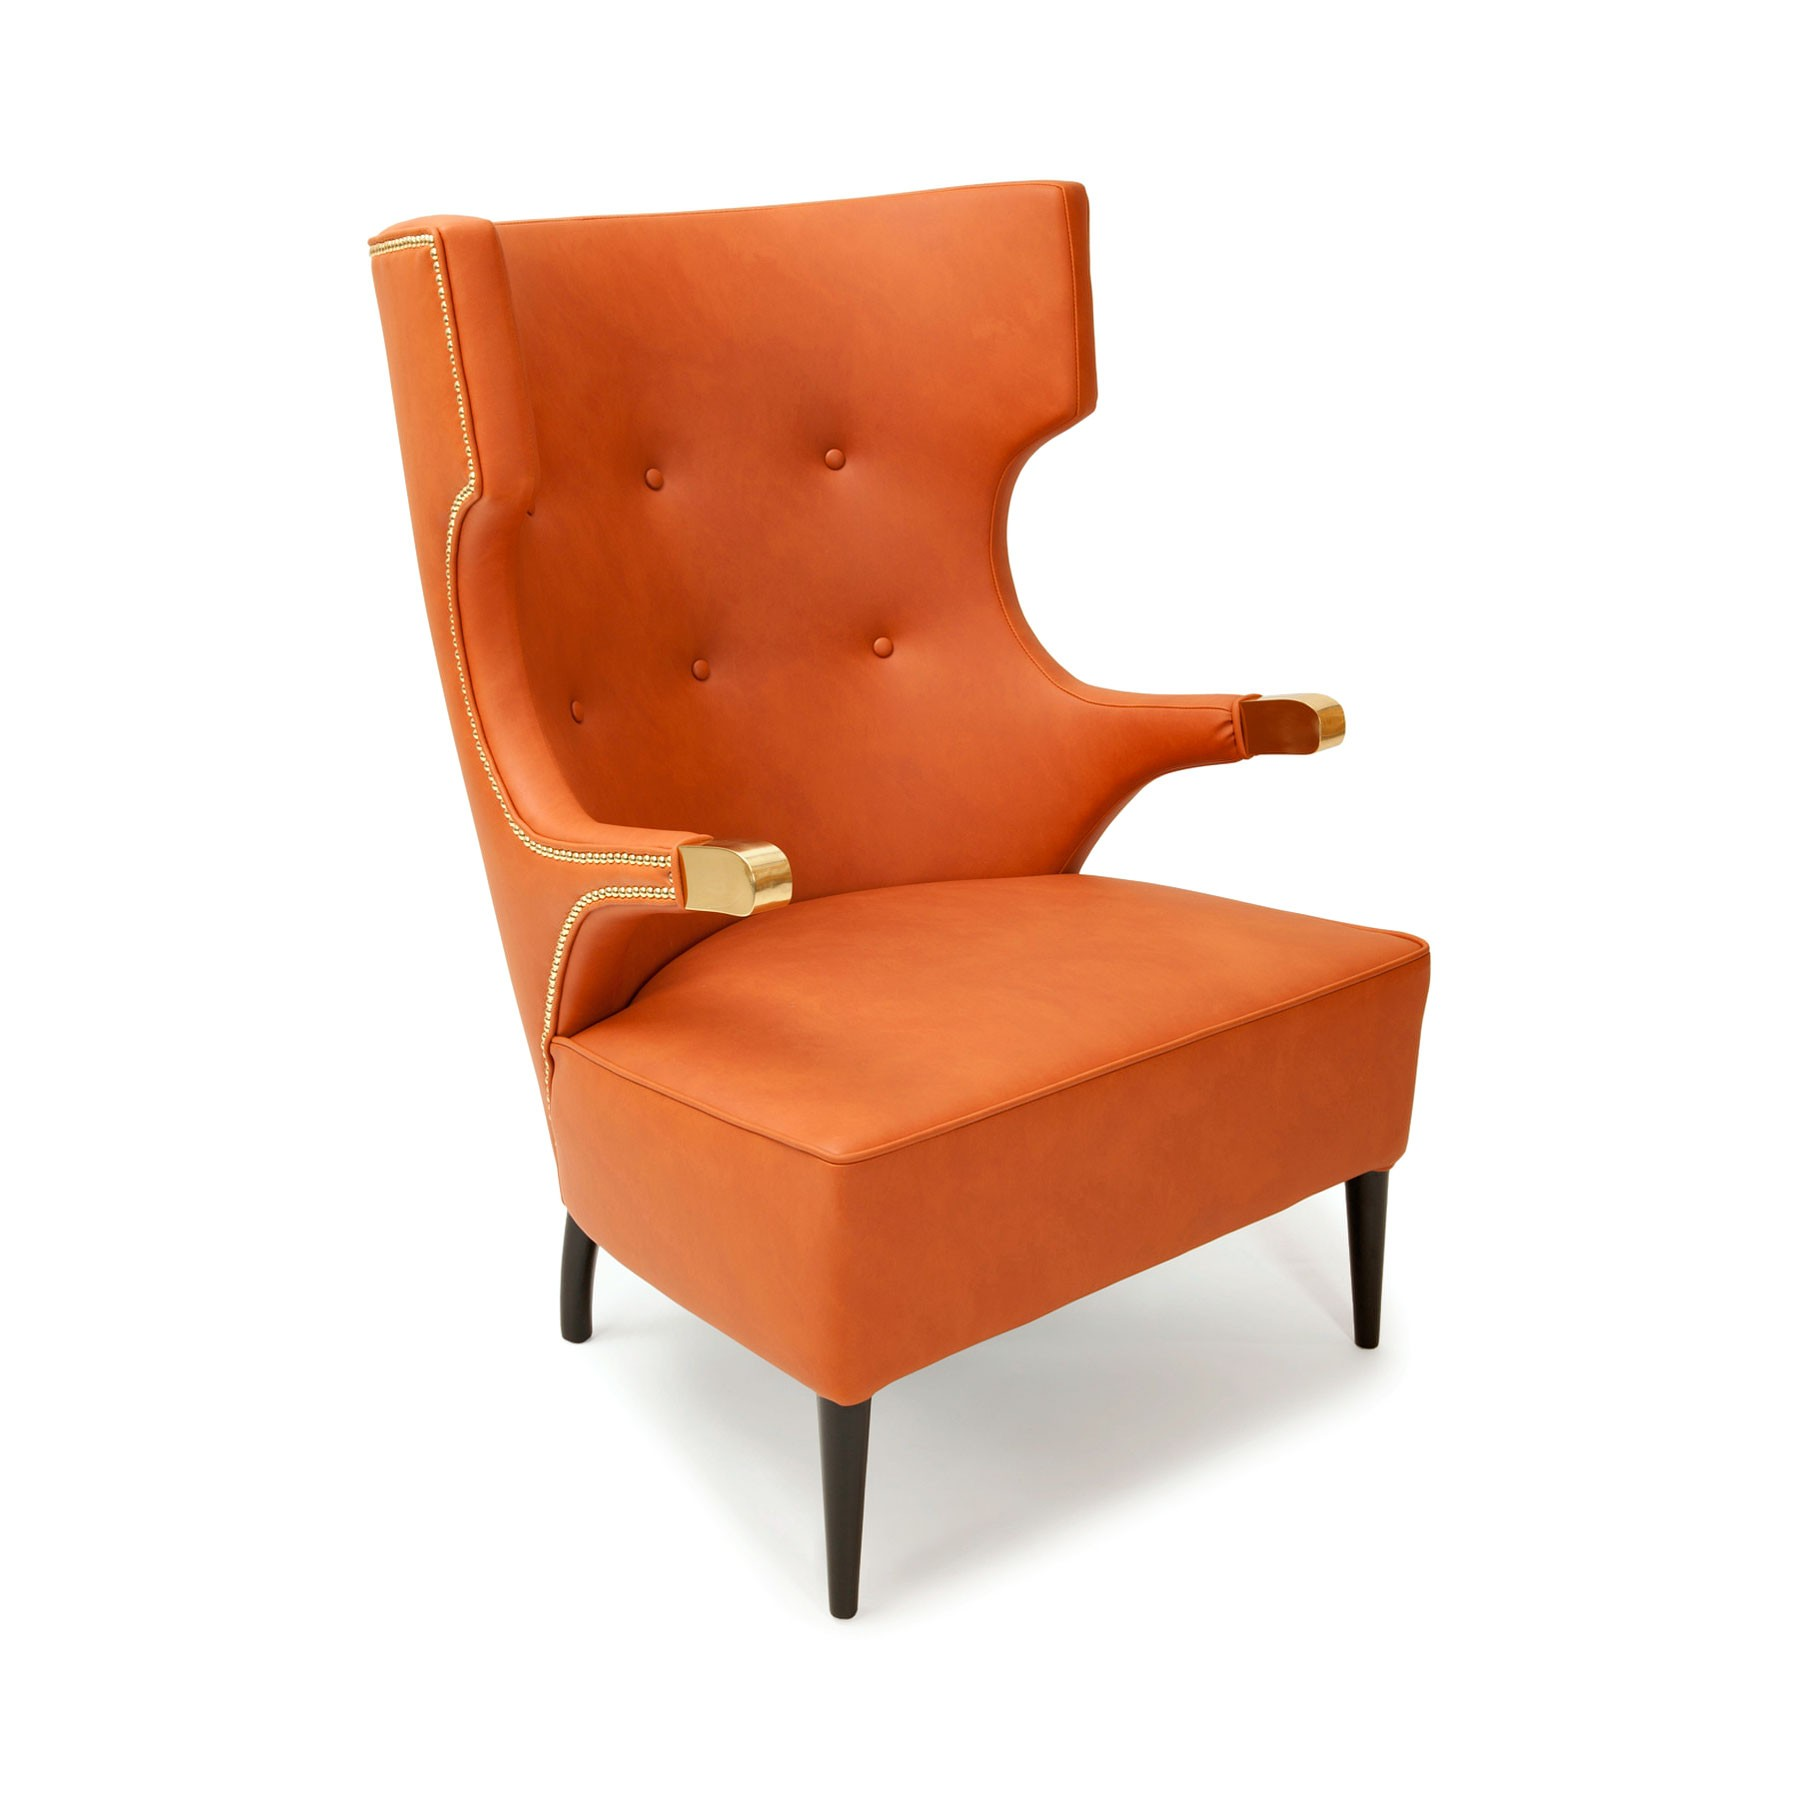 Sessel orange aus kunstleder online bei trend4rooms for Sessel orange